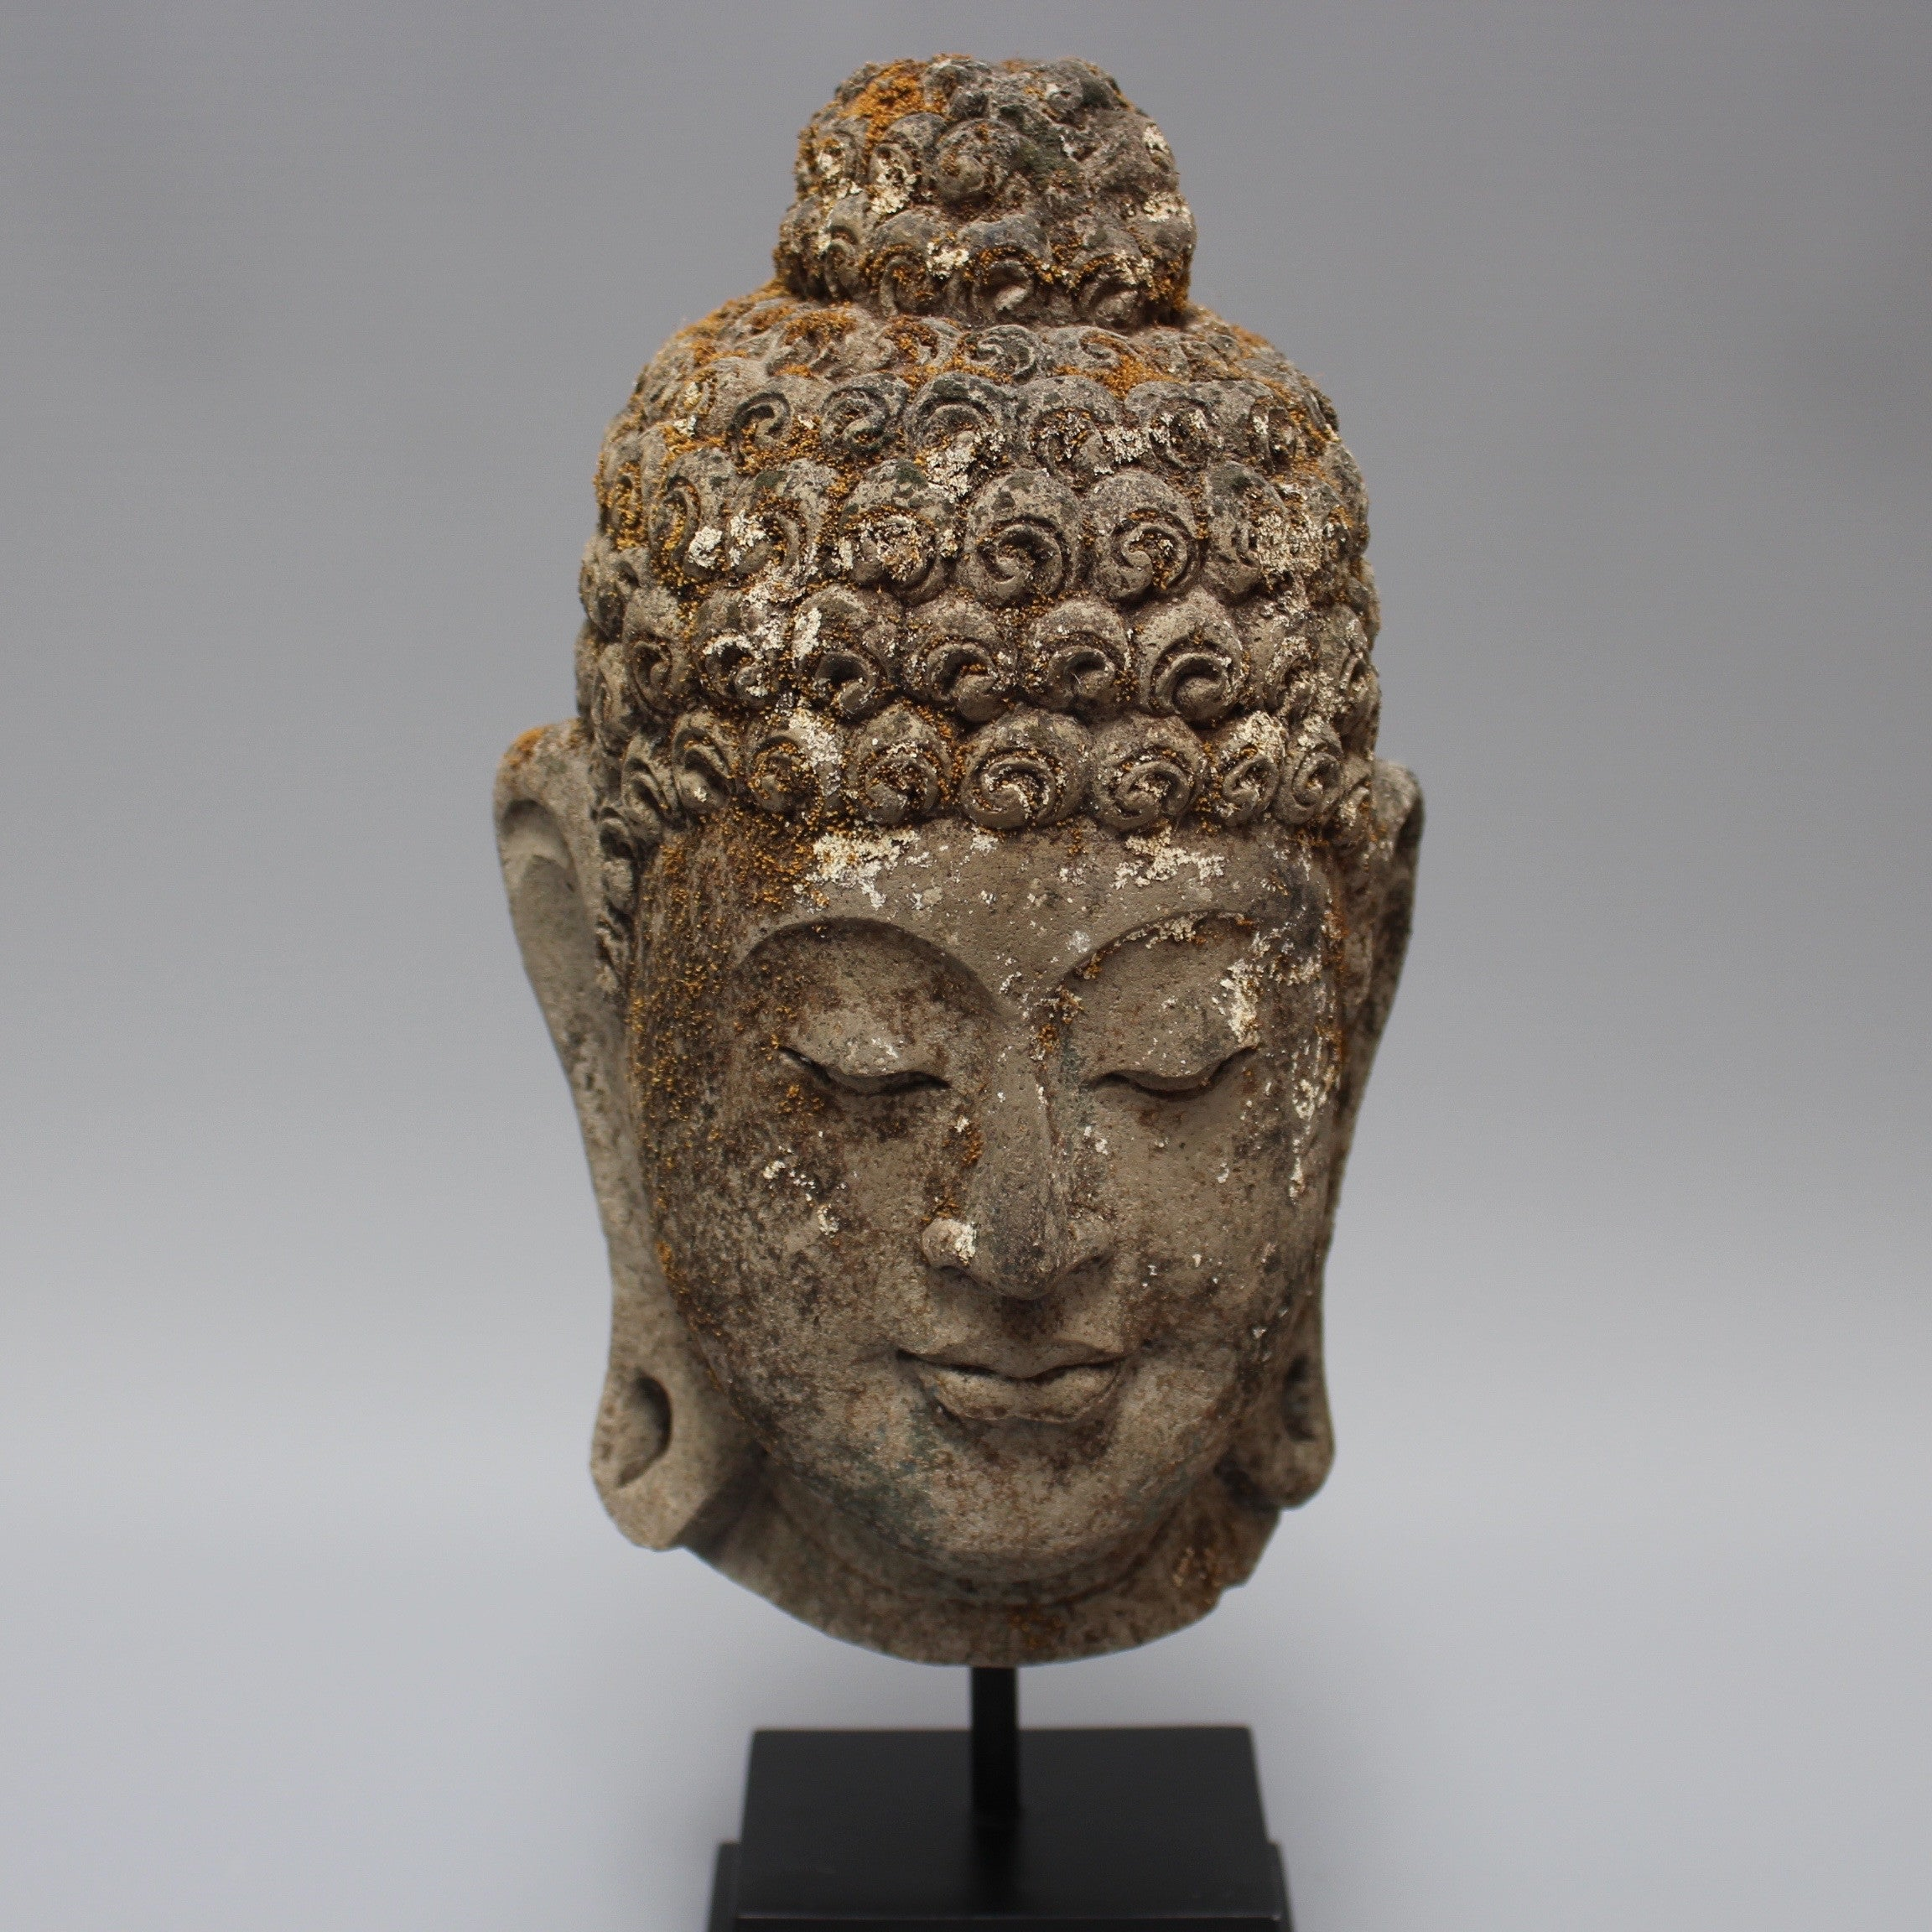 Vintage Balinese Buddha Head on Contemporary Stand (c. 1940s)